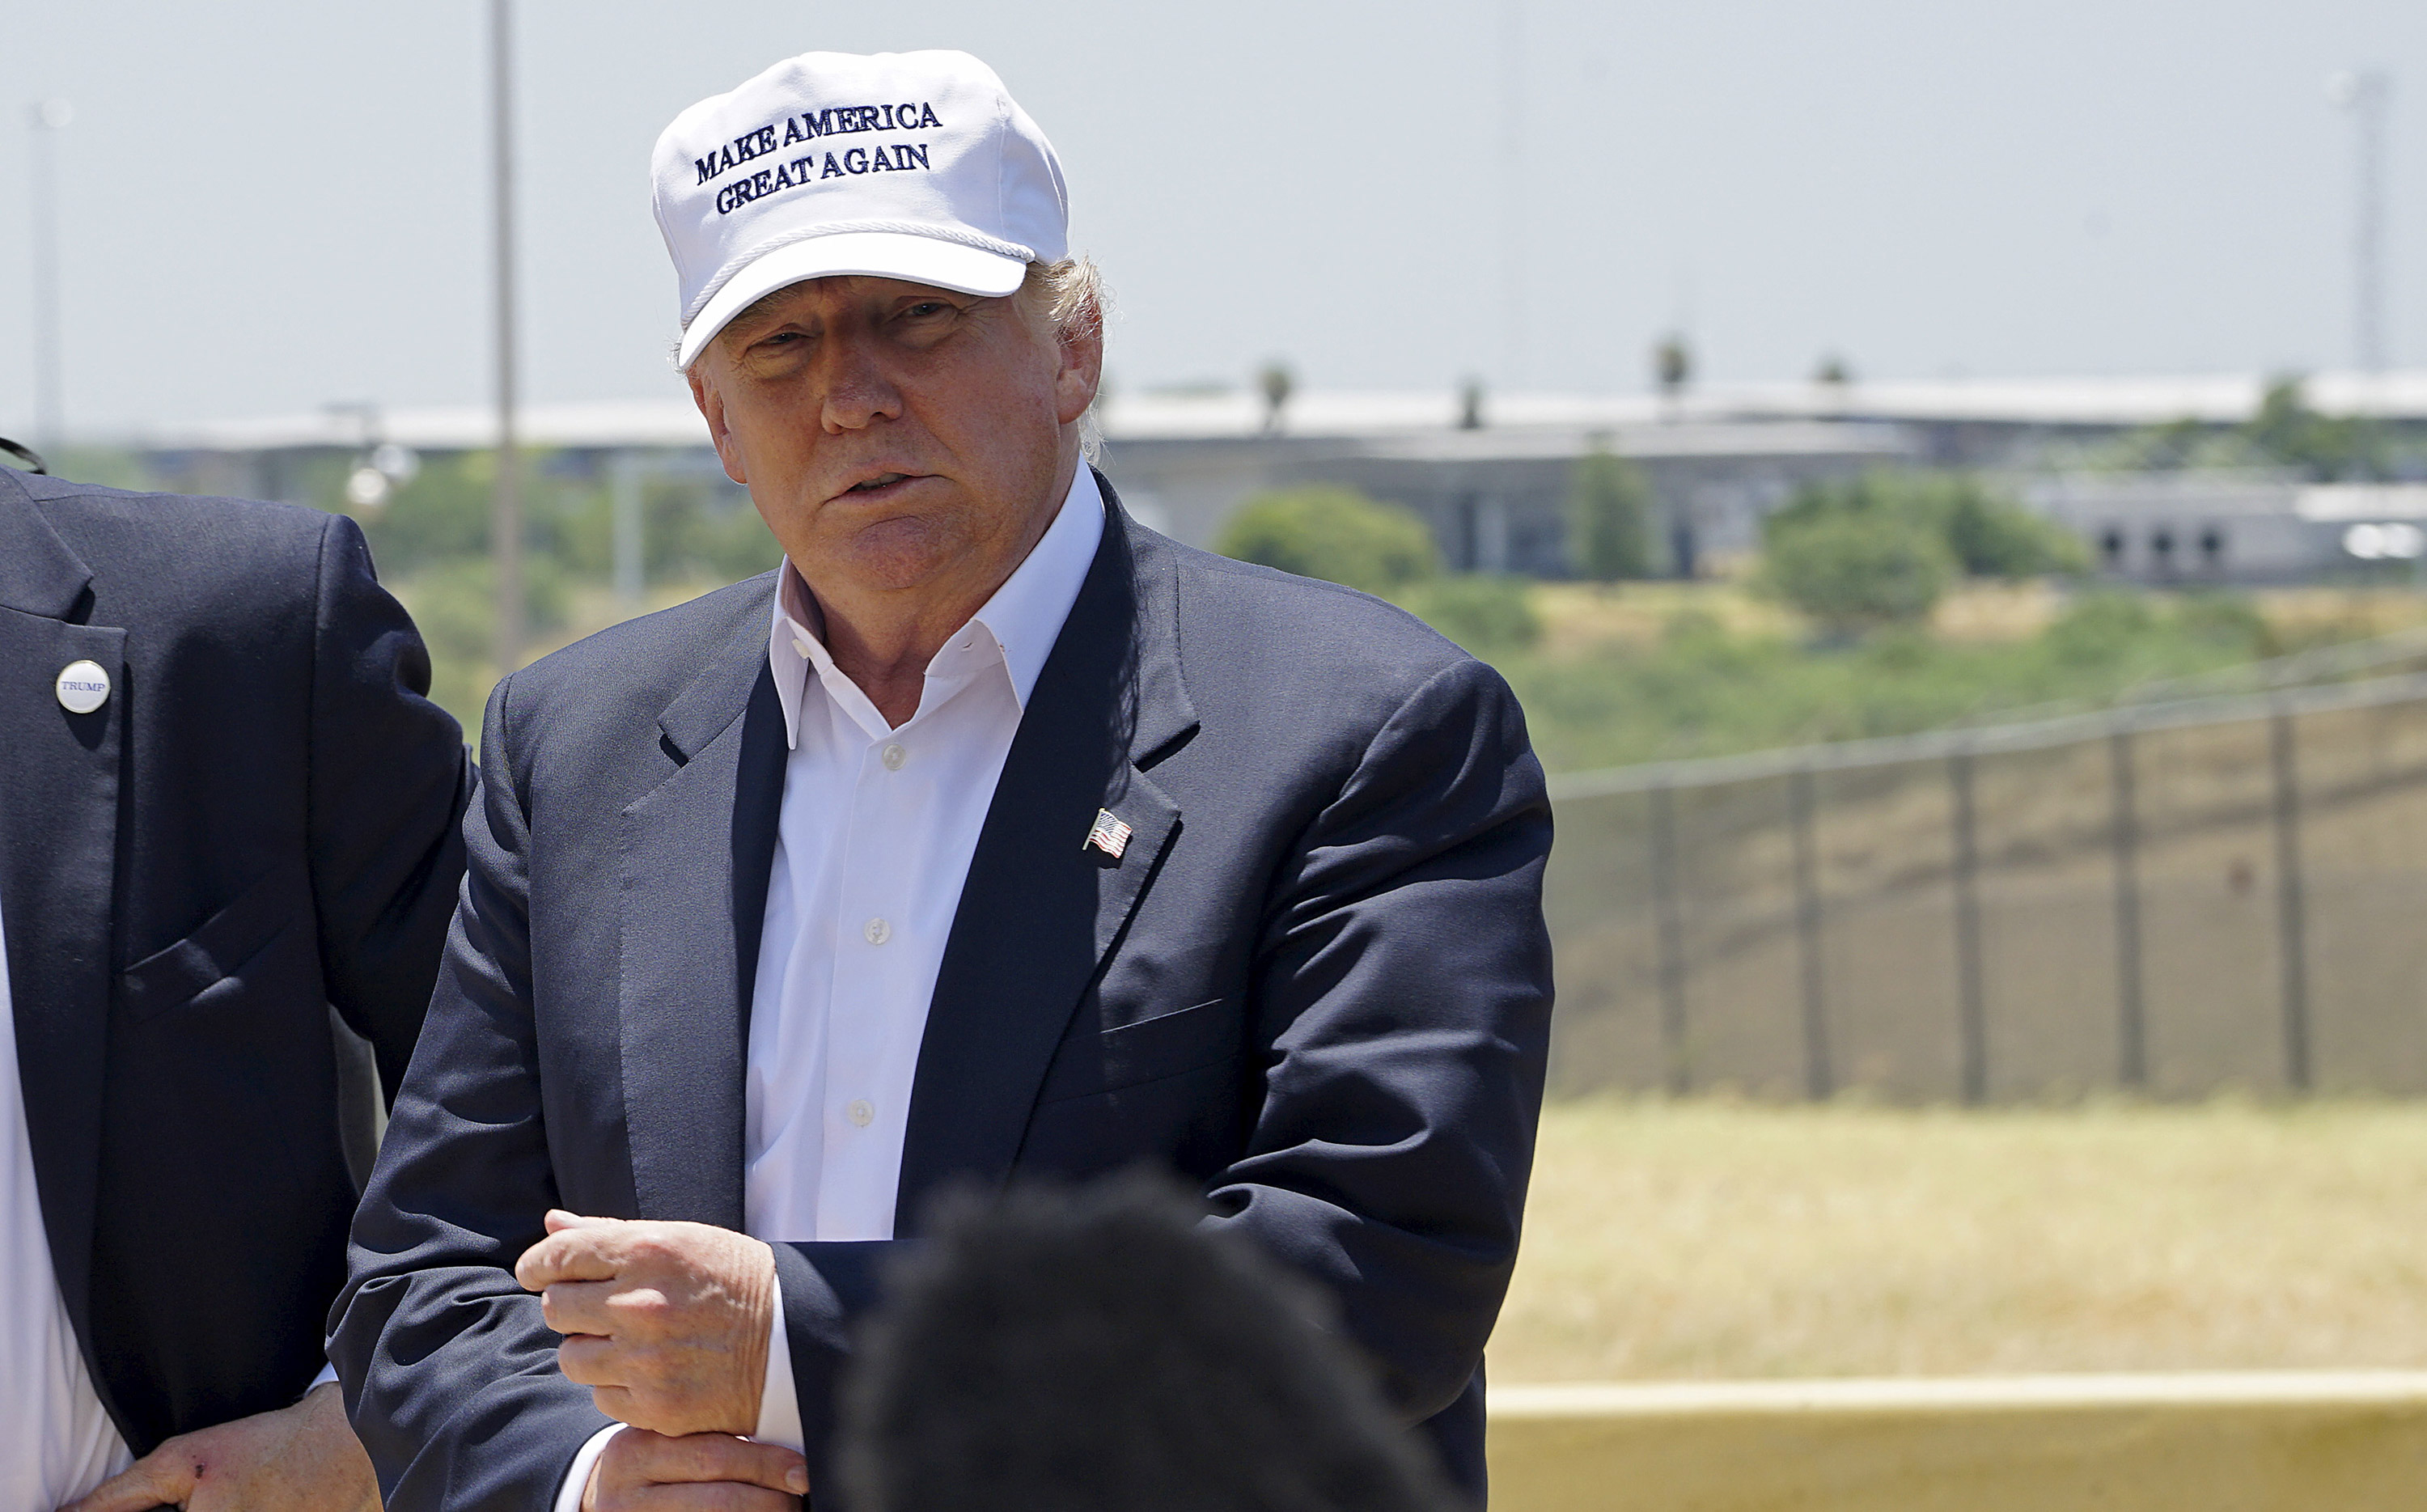 Republican presidential candidate Donald Trump attends a news conference near the U.S.-Mexico border (background), outside Laredo, Texas July 23, 2015.